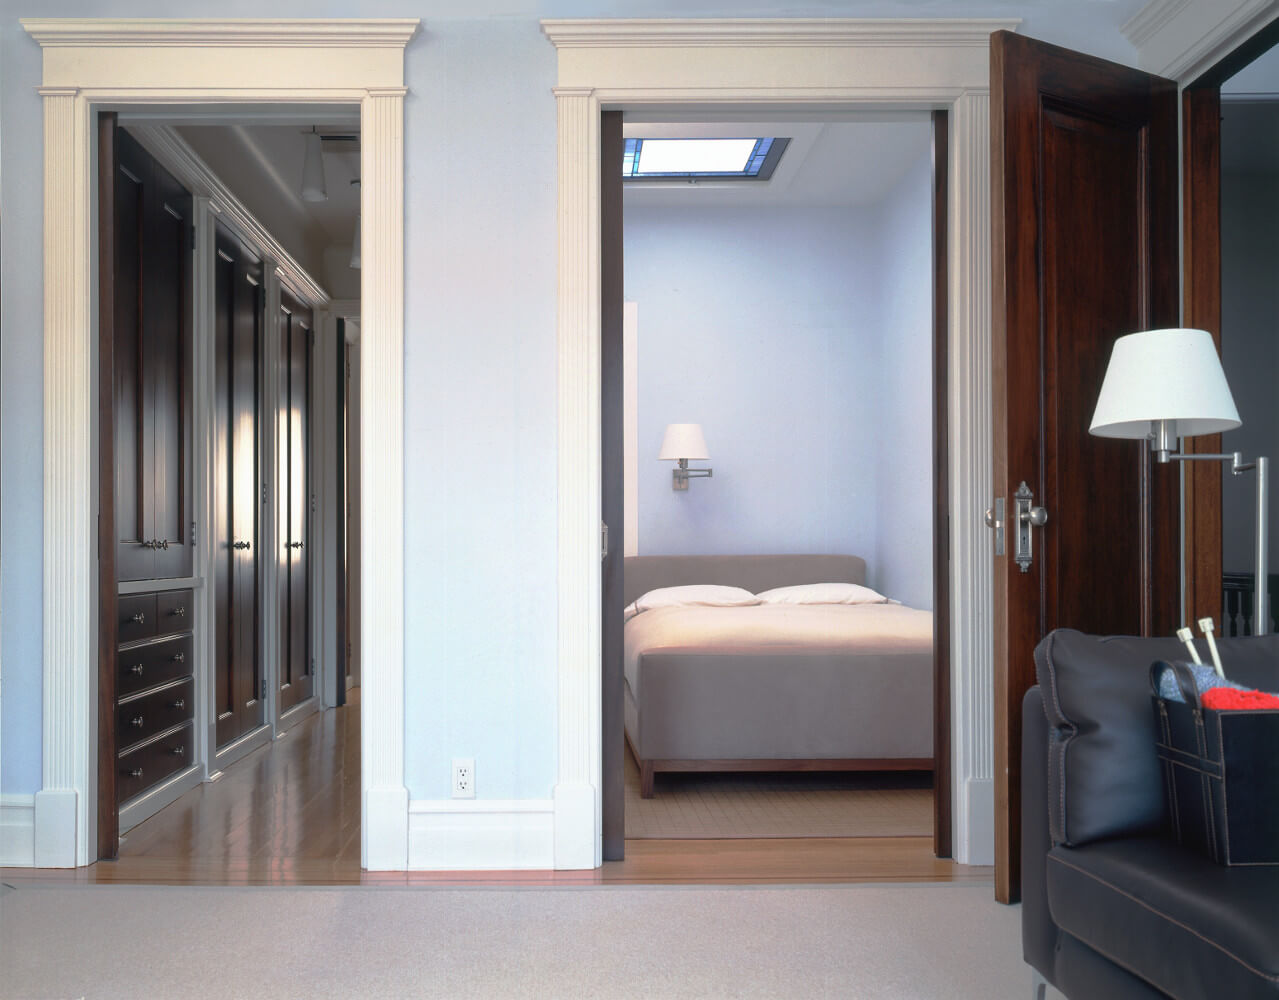 A new skylights turns an interior space into a bedroom in this grand limestone row house.